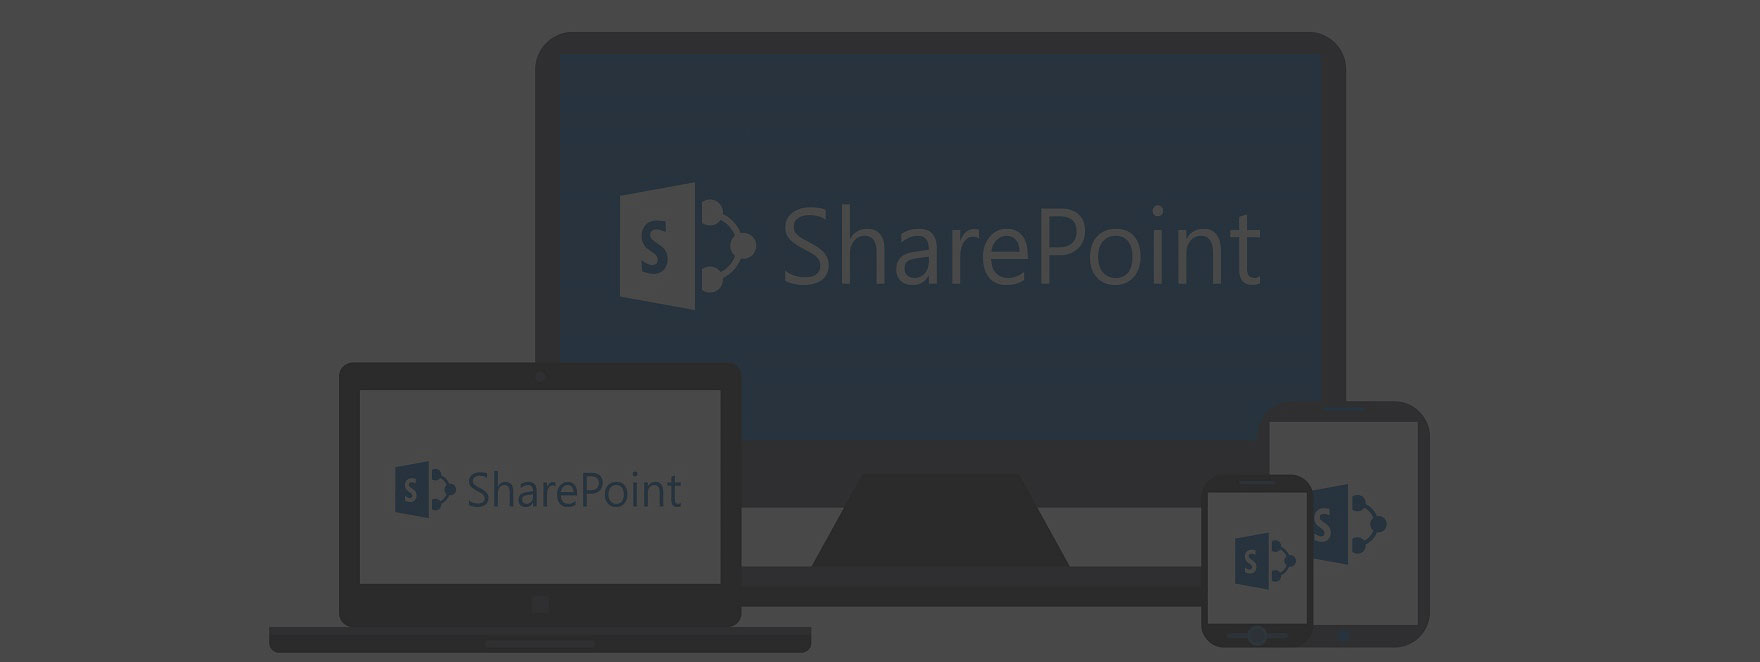 Deploying a Provider Hosted SharePoint App to Azure and SharePoint Online